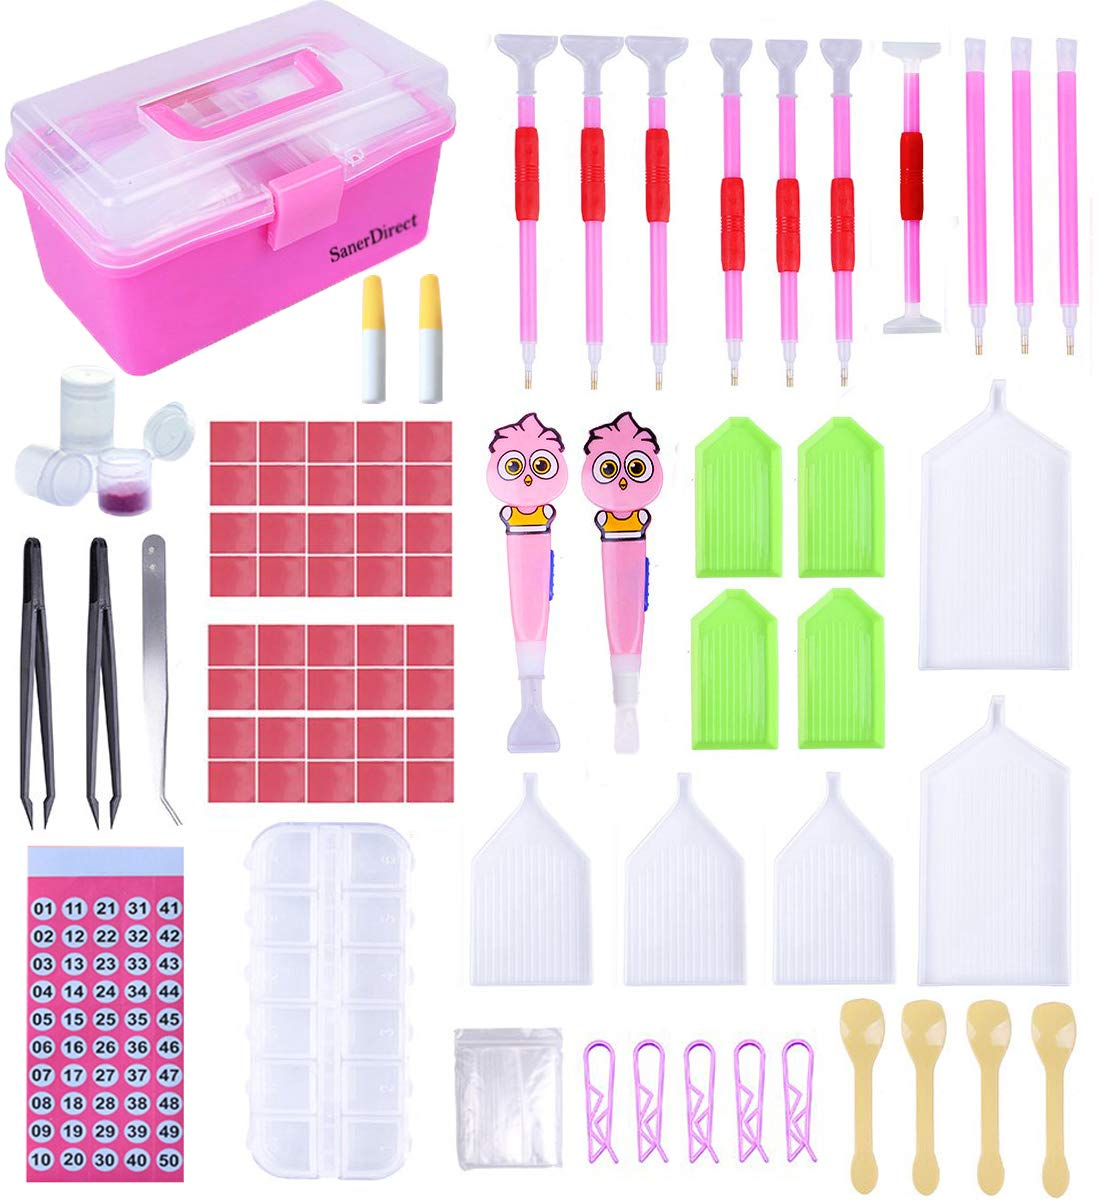 Align Diamonds Tools STAROAR 5D Diamond Painting Multi Placer Tips from 3 to 15 and Straightener Fixing Tool